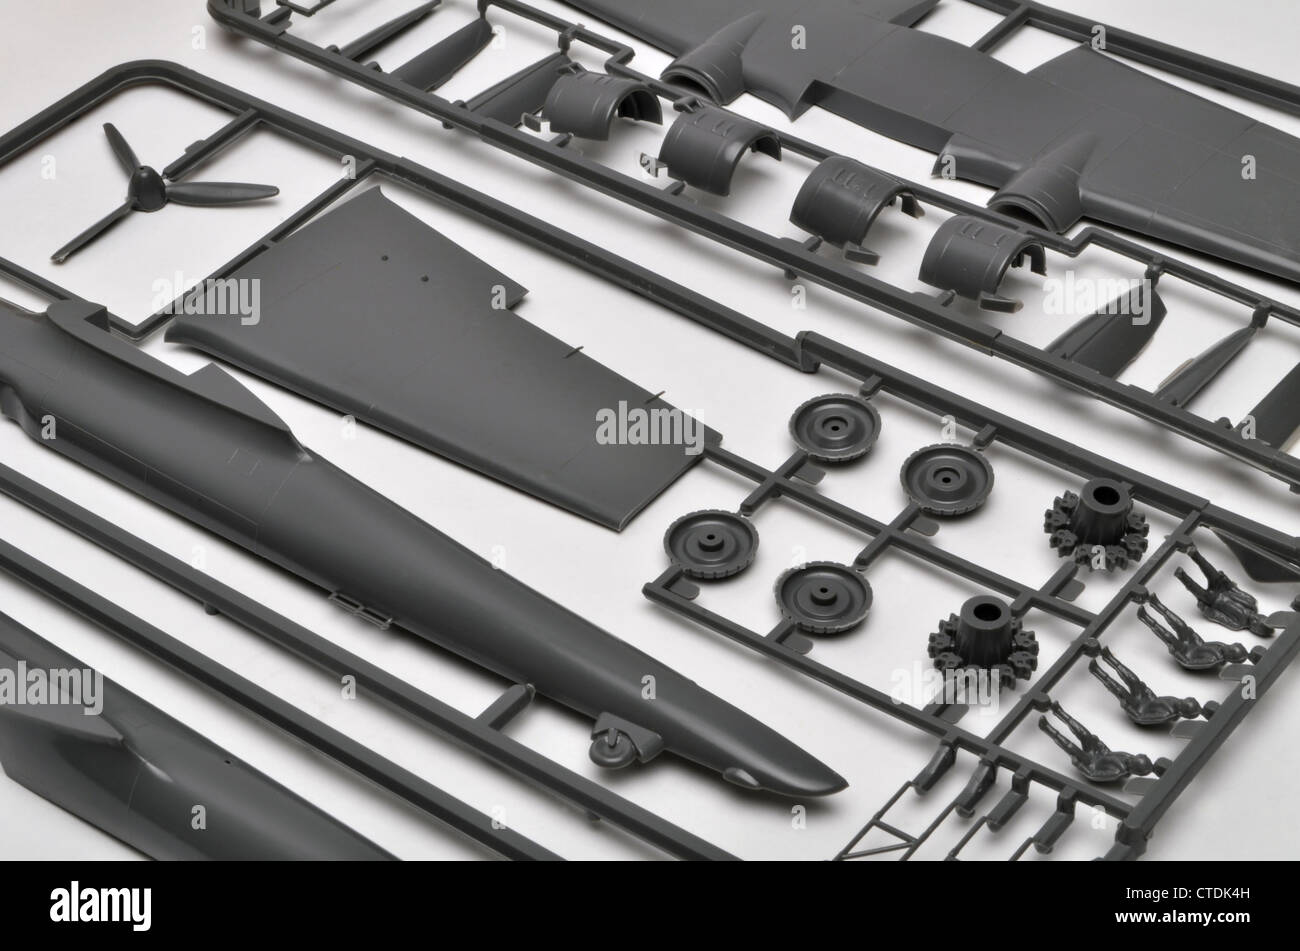 Frog 1/72 Scale Dornier Do-17 polystyrene plastic model aircraft construction kit parts on sprues. - Stock Image